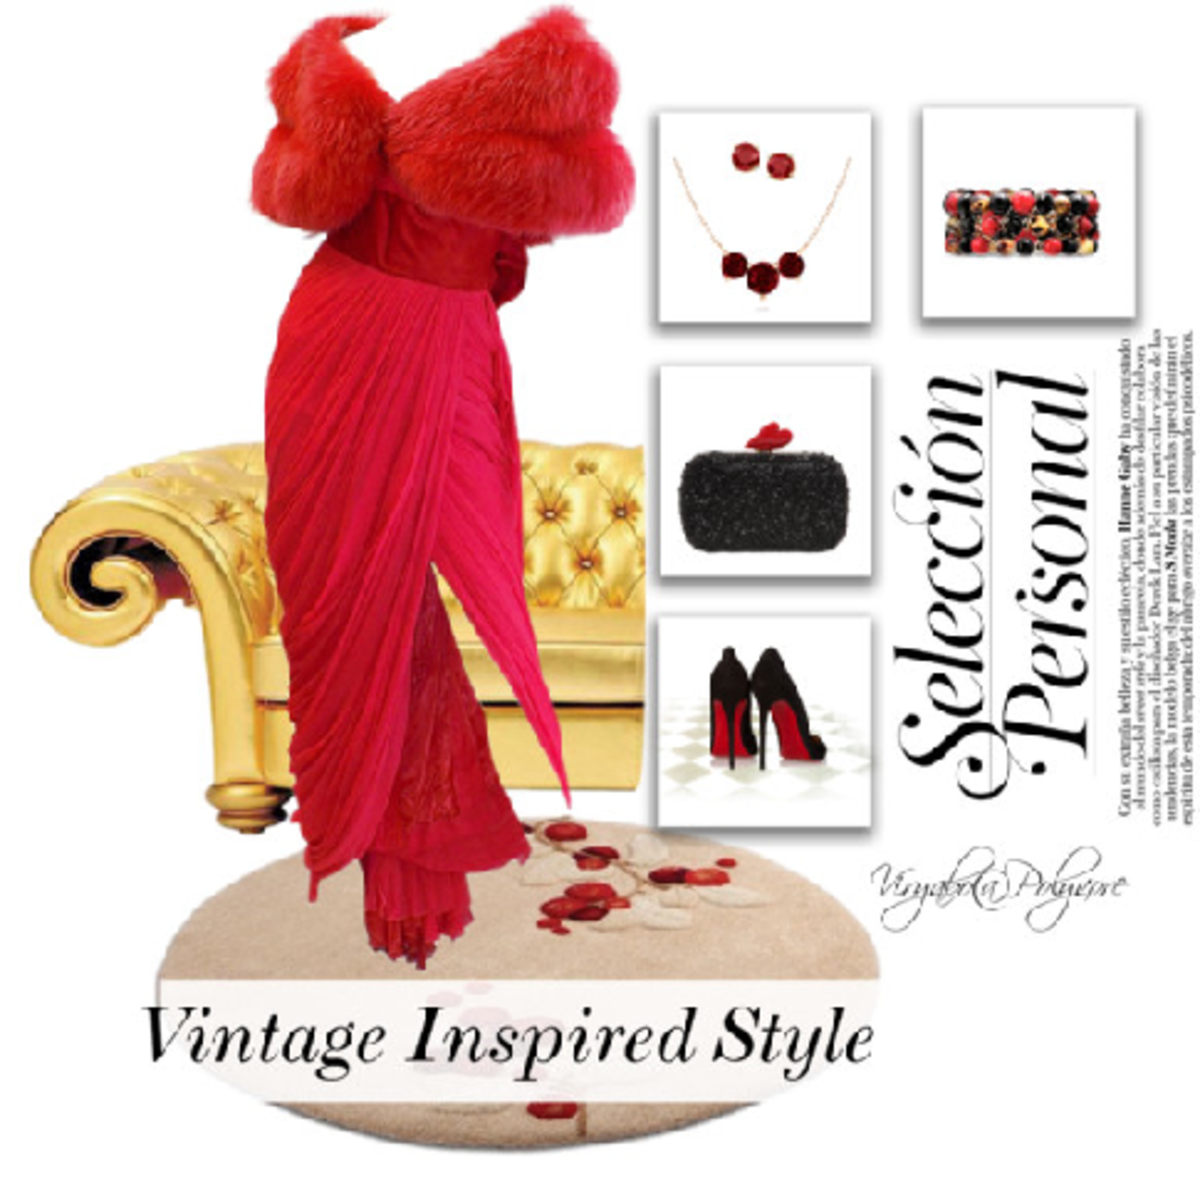 Chic vintage style - Old Hollywood dress with faux fur details an the characteristic red color. Fashion accessories include stiletto heels, clutch handbag, and costume jewelry. A Vintage Inspired Style